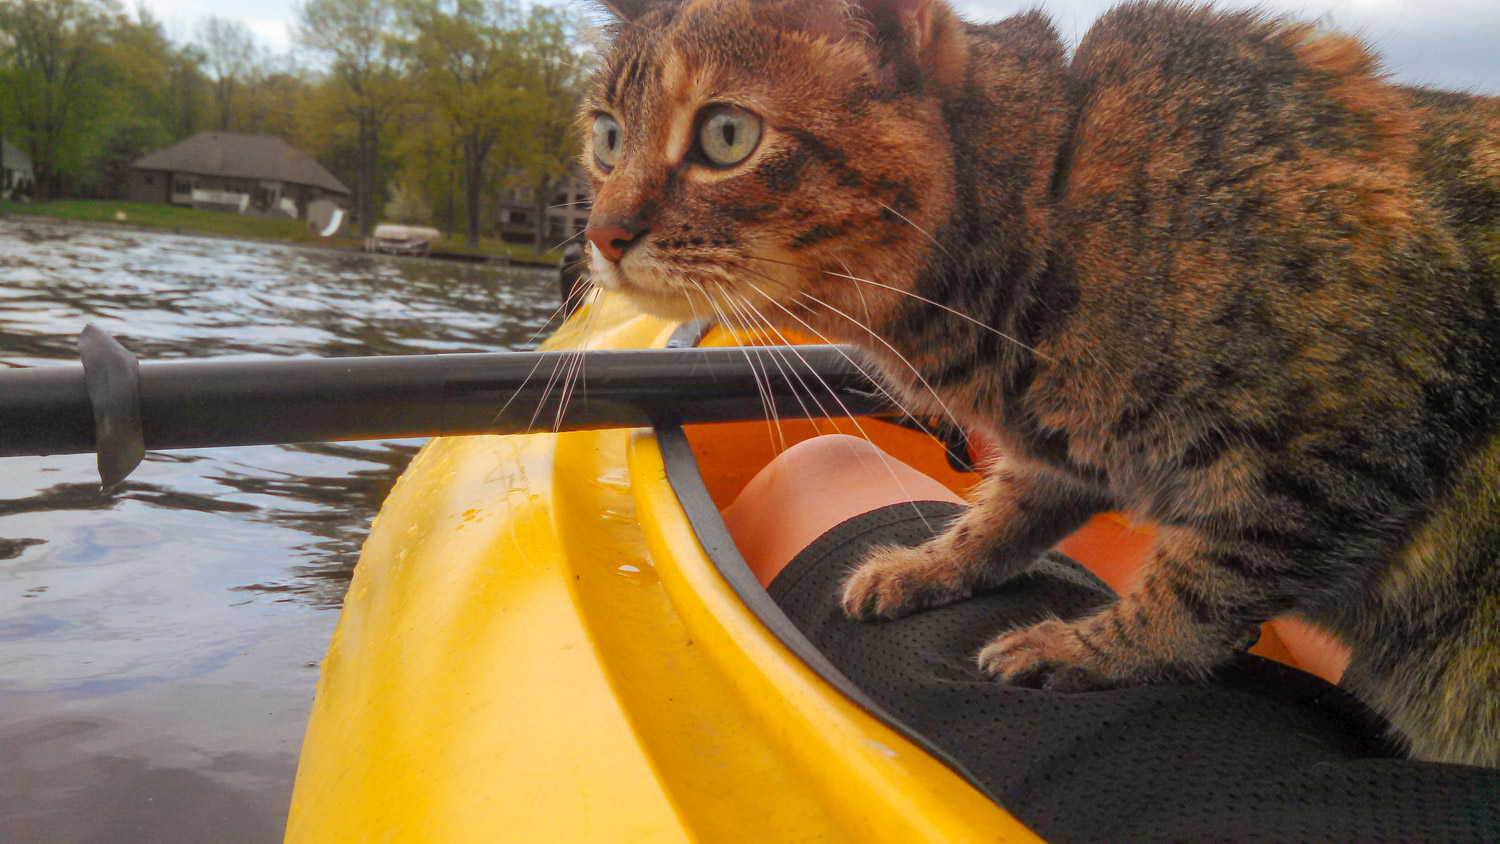 'She seems to really enjoy kayaking and even has accompanied me paddle boarding several times this past summer,' Dush says of Josie. (Photo: Erin Dush)